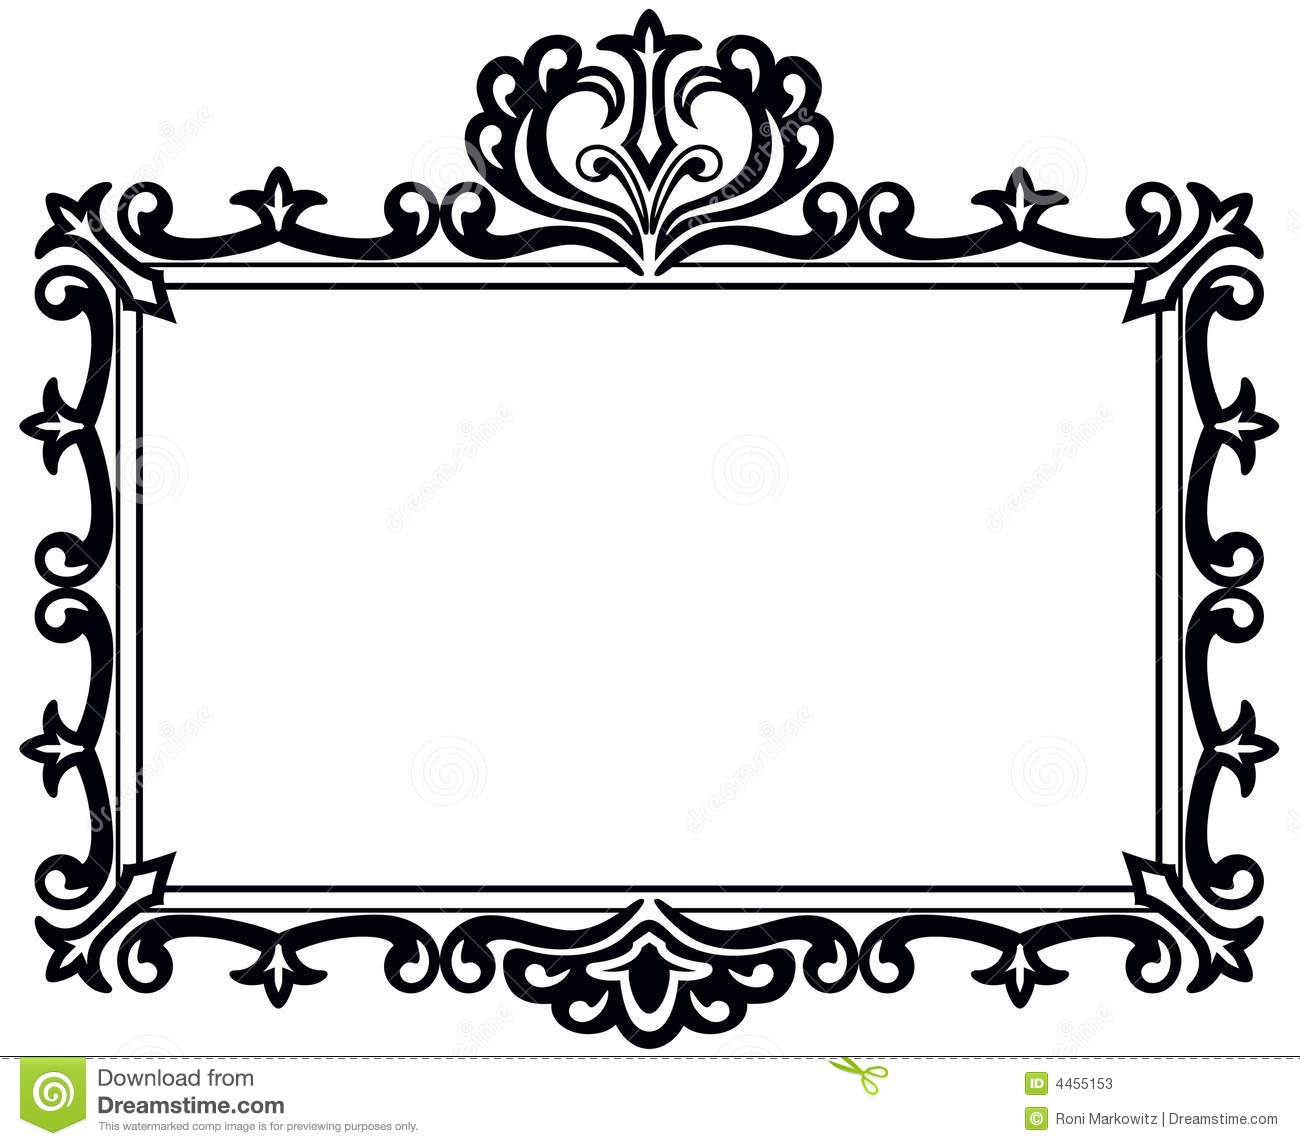 Fancy picture frame clipart banner freeuse Fancy Frame Clip Art Black And White | Clipart Panda - Free Clipart ... banner freeuse